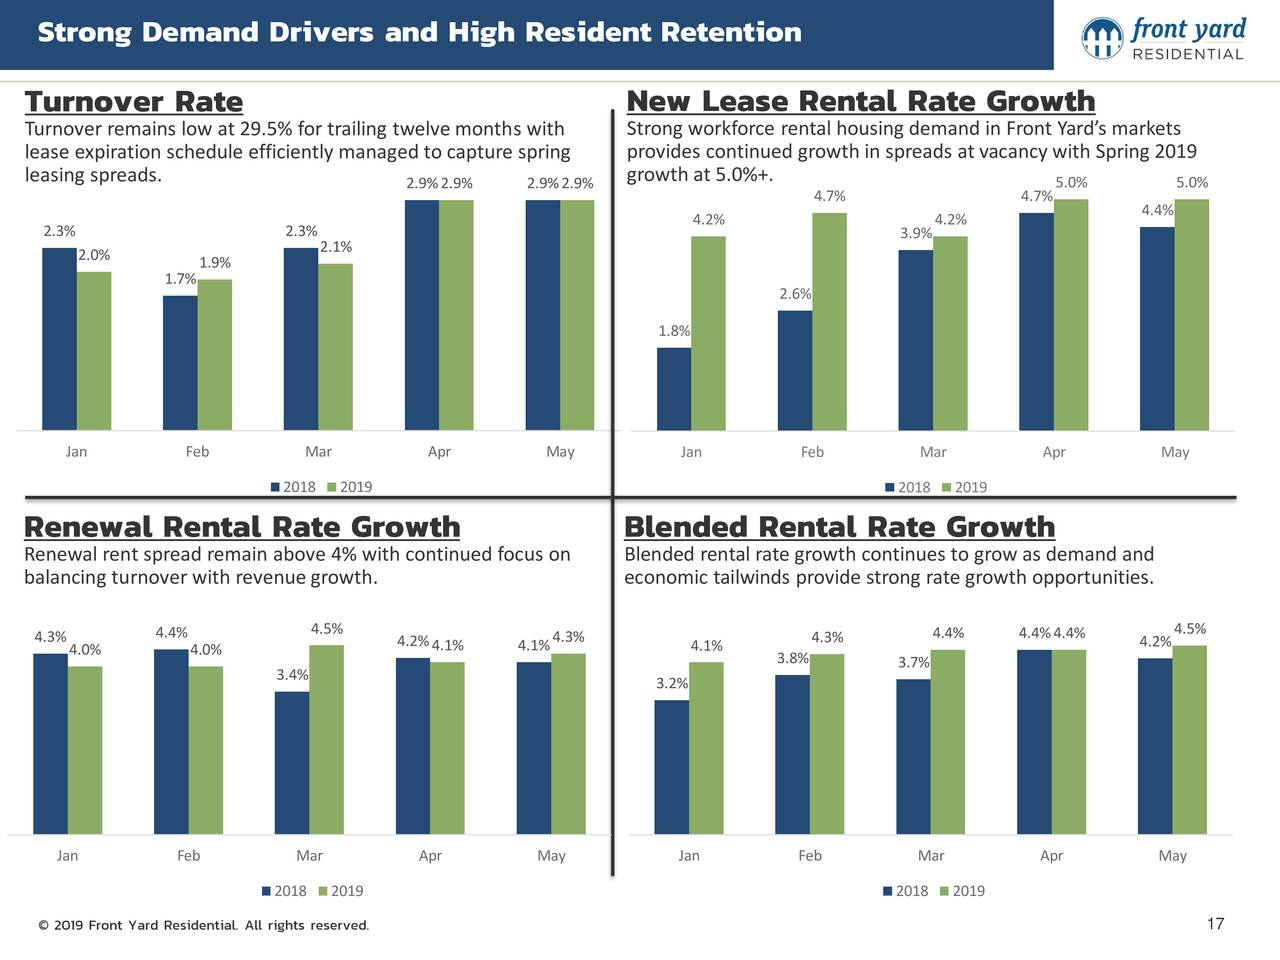 Turnover Rate New Lease Rental Rate Growth Turnover remains low at 29.5% for trailing twelve months with Strong workforce rental housing demand in Front Yard's markets lease expiration schedule efficiently managed to capture spring provides continued growth in spreads at vacancy with Spring 2019 leasing spreads. growth at 5.0%+. 2.9%2.9% 2.9%2.9% 4.7% 4.7%5.0% 5.0% 4.4% 2.3% 2.3% 4.2% 3.9% 4.2% 2.1% 2.0% 1.9% 1.7% 2.6% 1.8% Jan Feb Mar Apr May Jan Feb Mar Apr May 2018 2019 2018 2019 Renewal Rental Rate Growth Blended Rental Rate Growth Renewal rent spread remain above 4% with continued focus on Blended rental rate growth continues to grow as demand and balancing turnover with revenue growth. economic tailwinds provide strong rate growth opportunities. 4.3% 4.4% 4.5% 4.2% 4.3% 4.3% 4.4% 4.4%4.4% 4.2%4.5% 4.0% 4.0% 4.1% 4.1% 4.1% 3.8% 3.4% 3.7% 3.2% Jan Feb Mar Apr May Jan Feb Mar Apr May 2018 2019 2018 2019 © 2019 Front Yard Residential. All rights reserved. 17